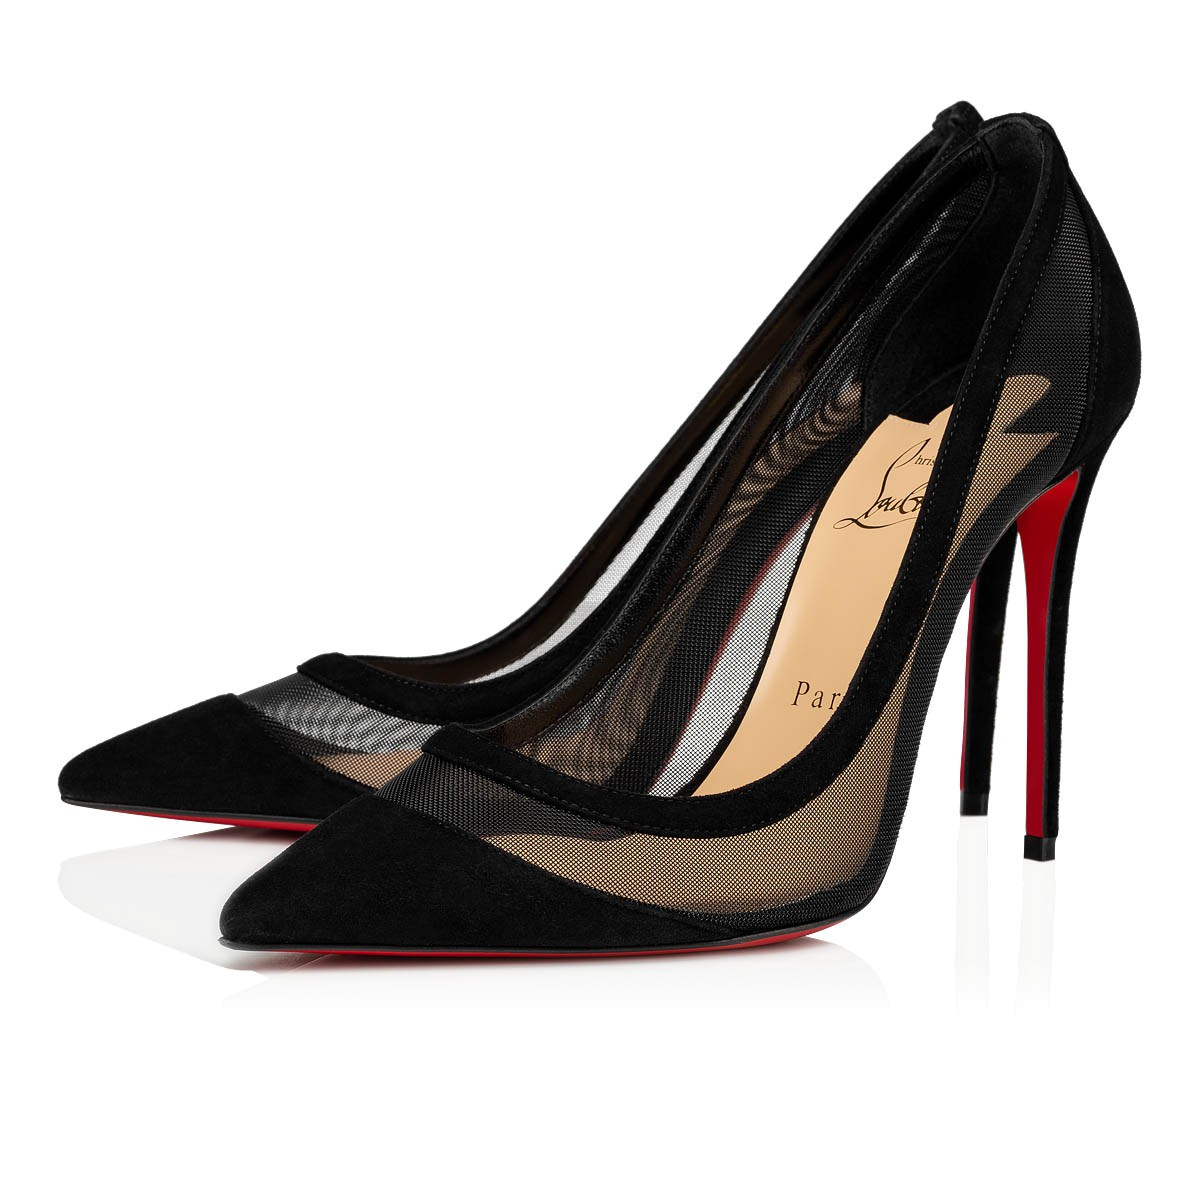 Shoes - Galativi - Christian Louboutin